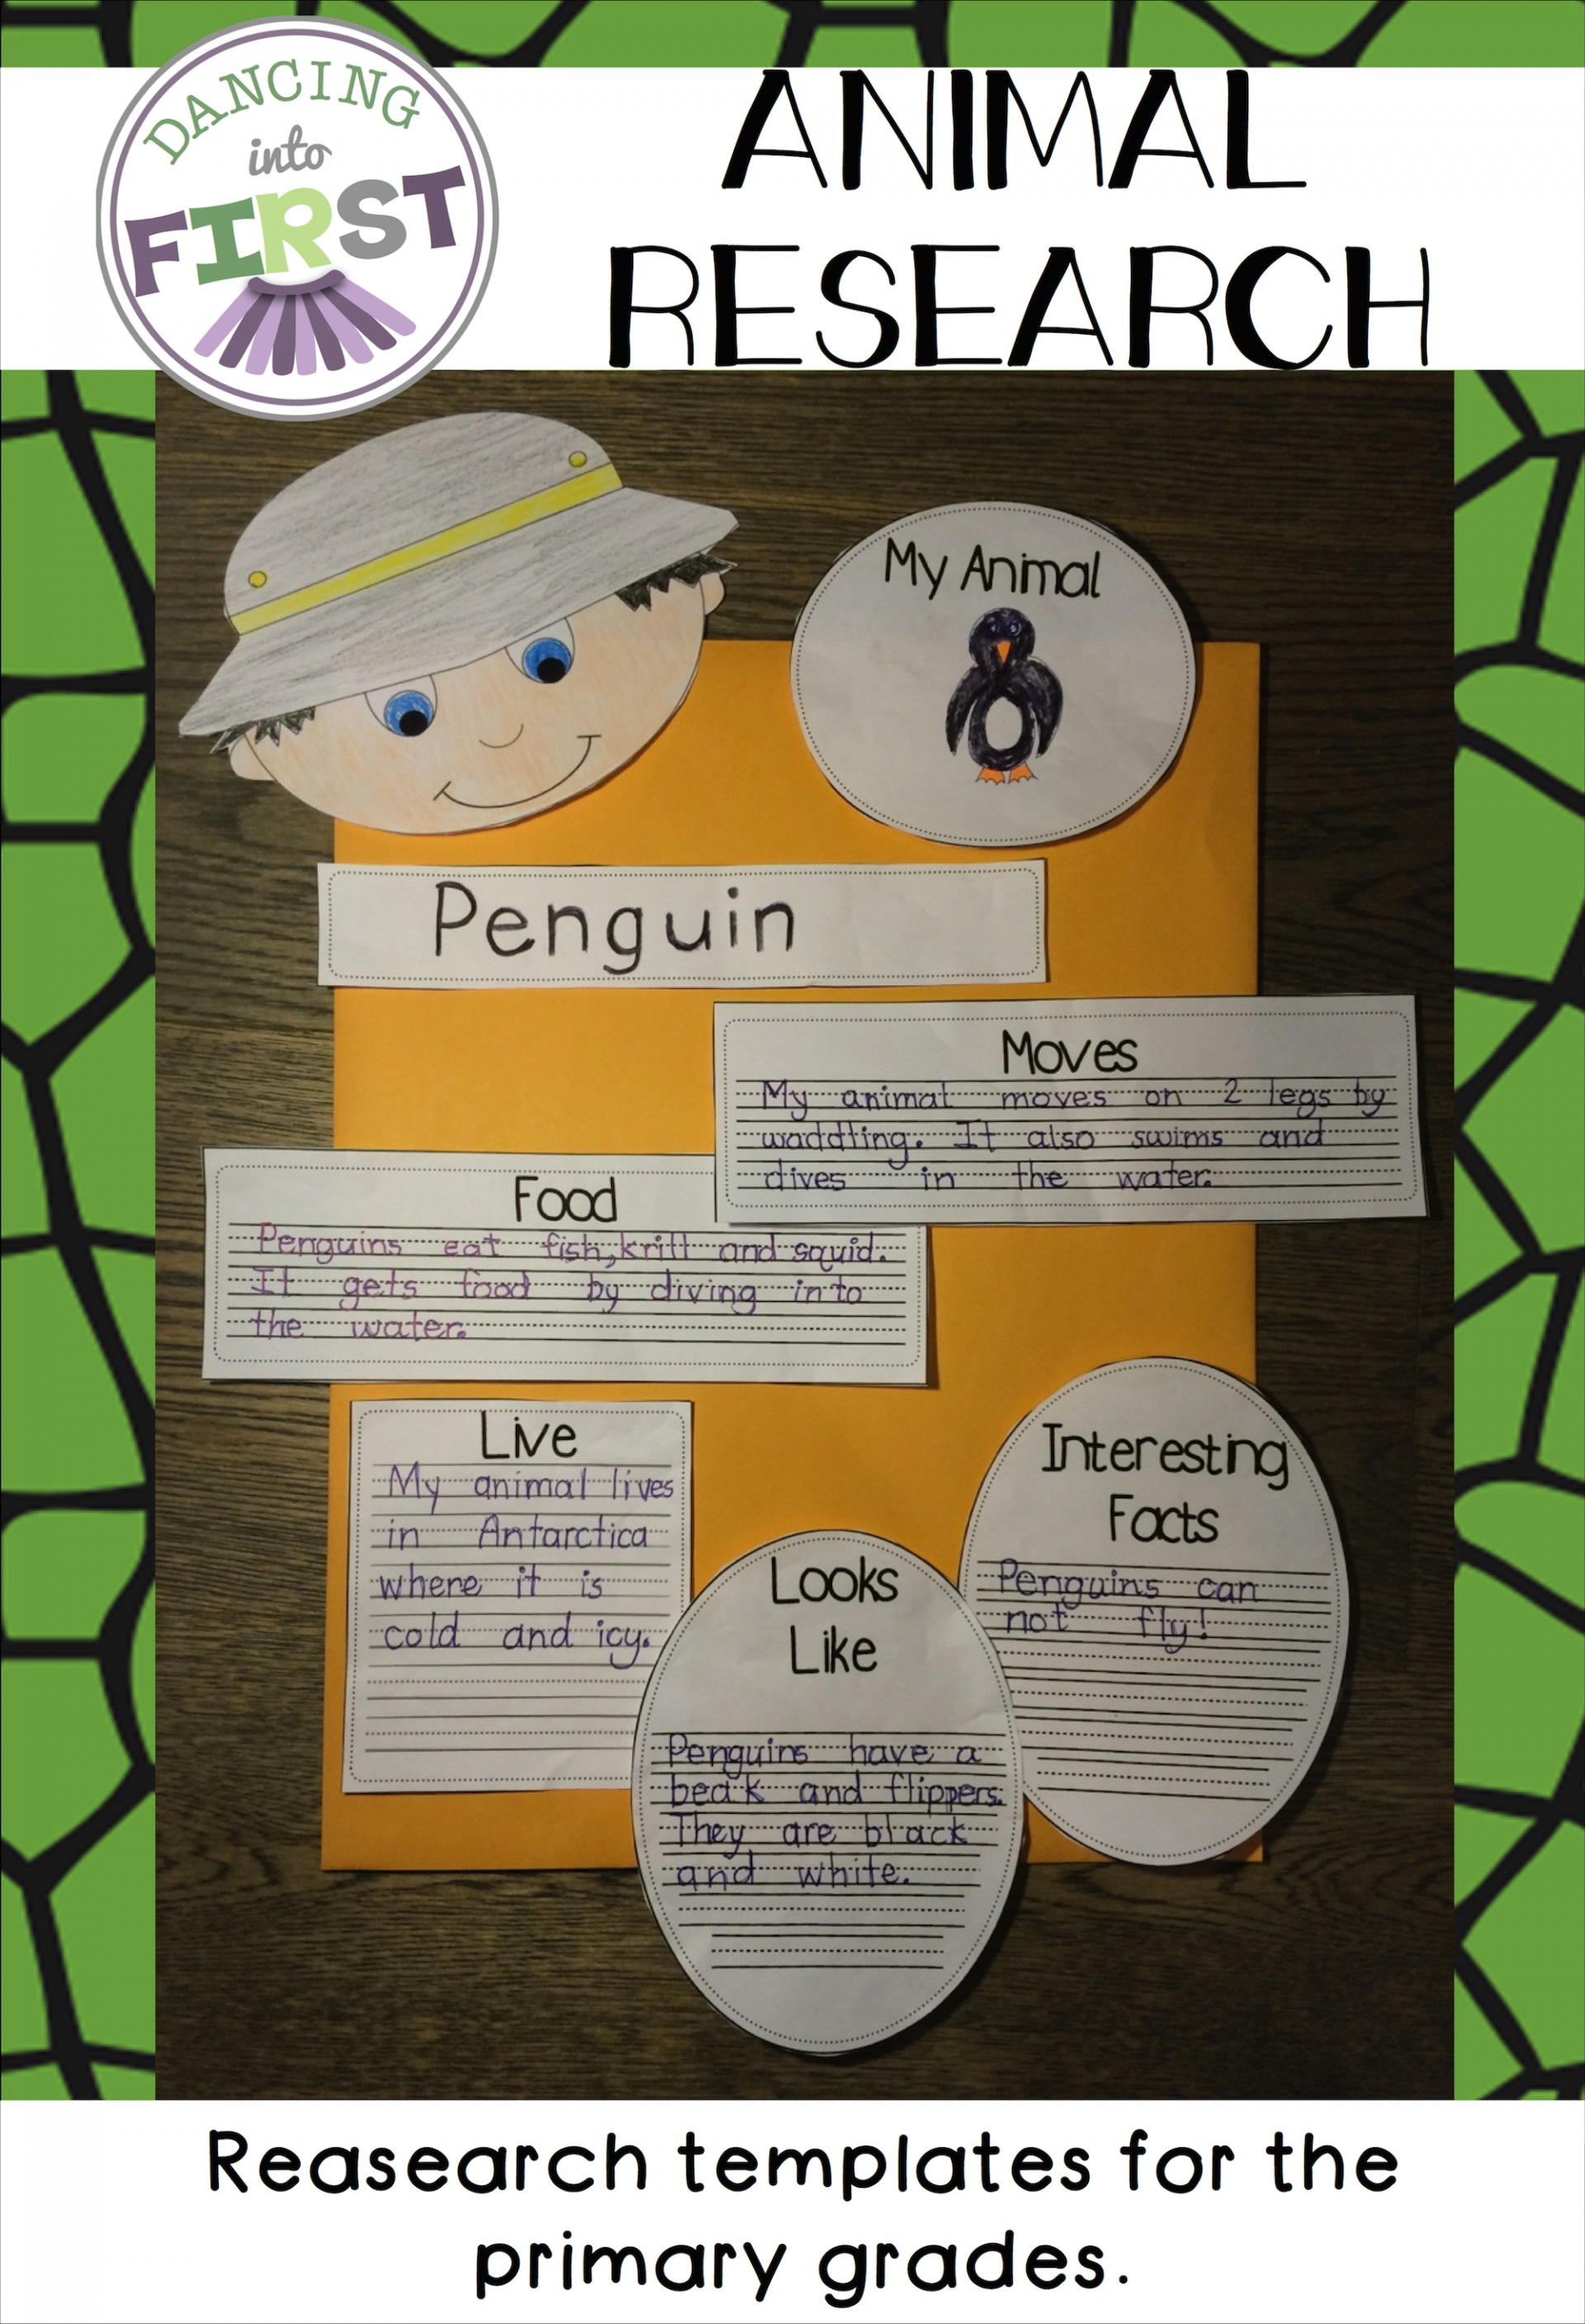 012 Research Paper Cool Topics To Do Project Wonderful A On Interesting For Projects 1920